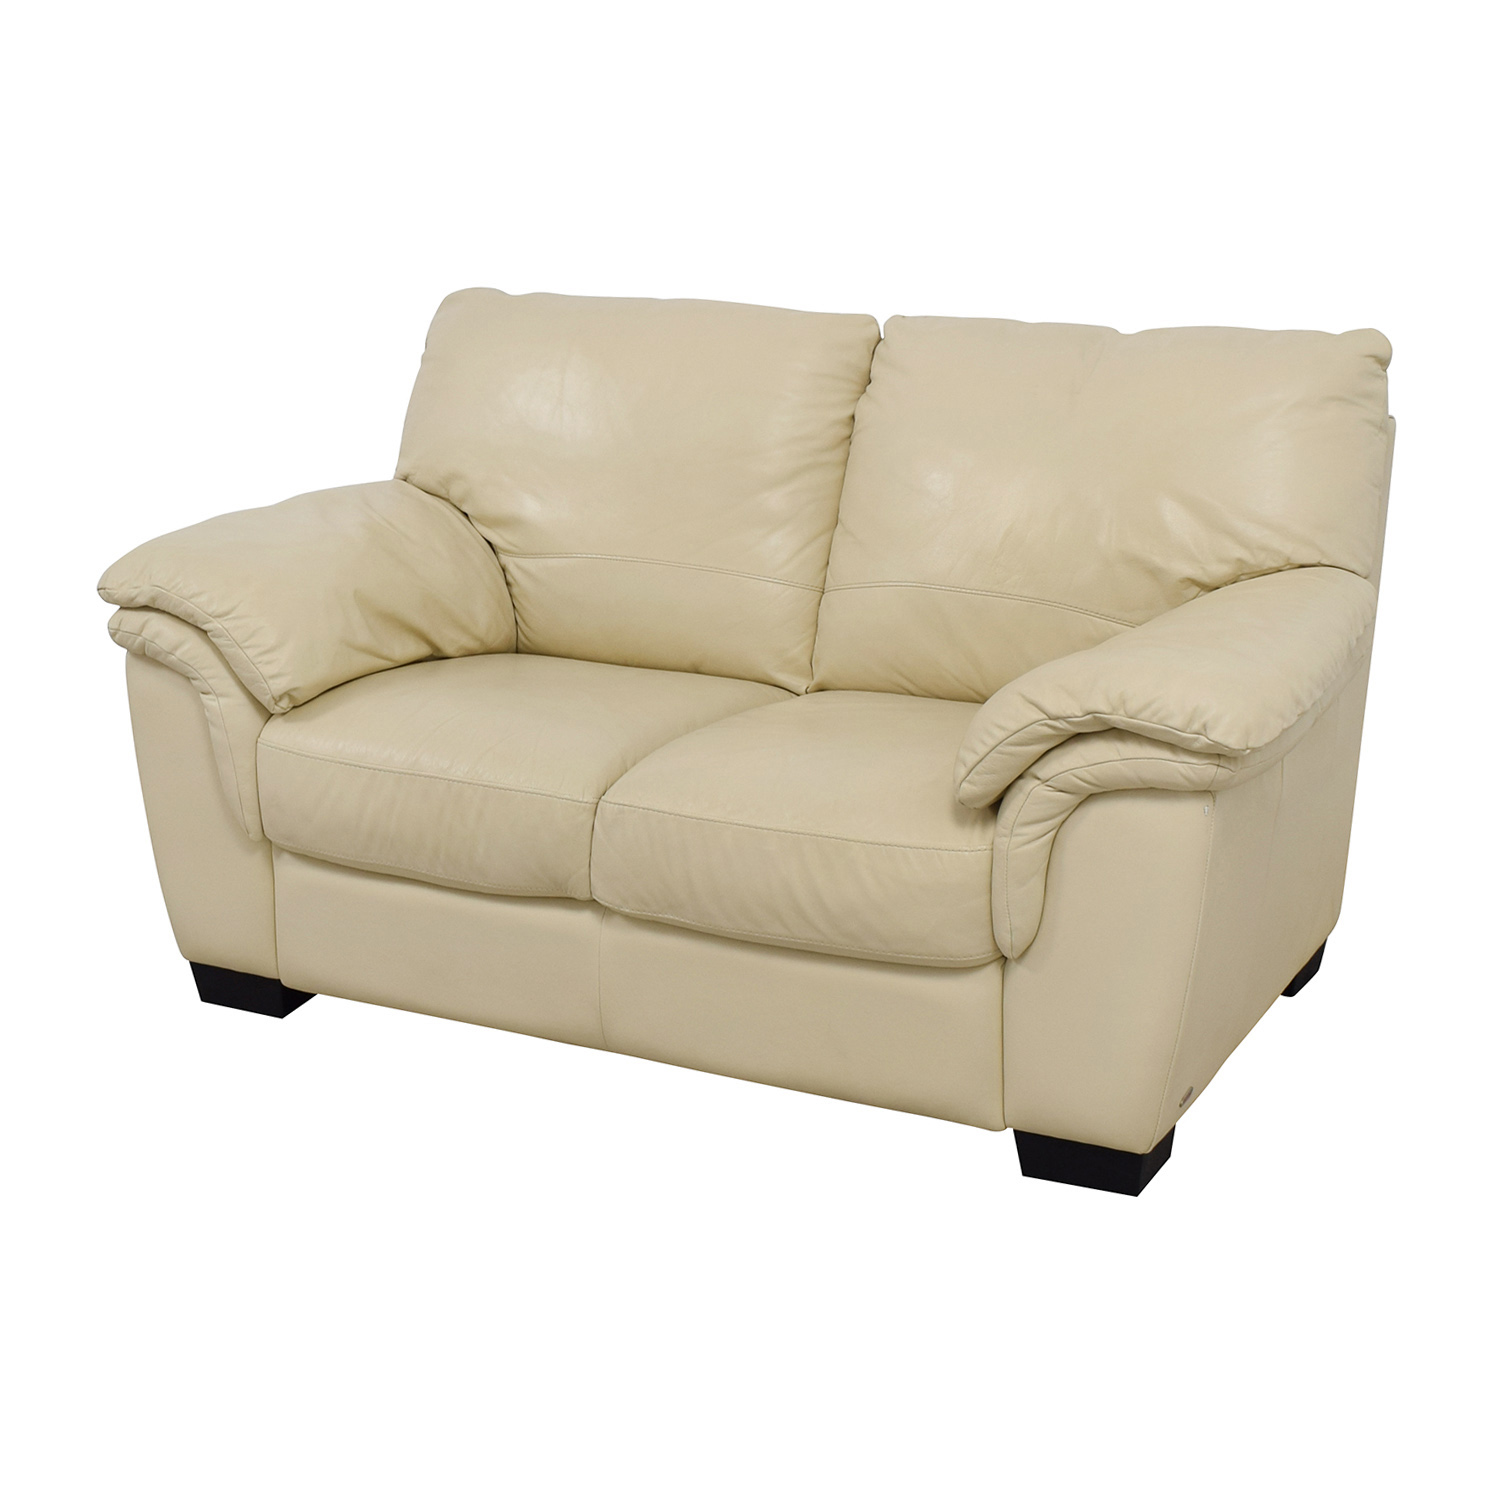 secondhand leather sofas leona pewter sofa 80% off - natuzzi italsofa white loveseat /